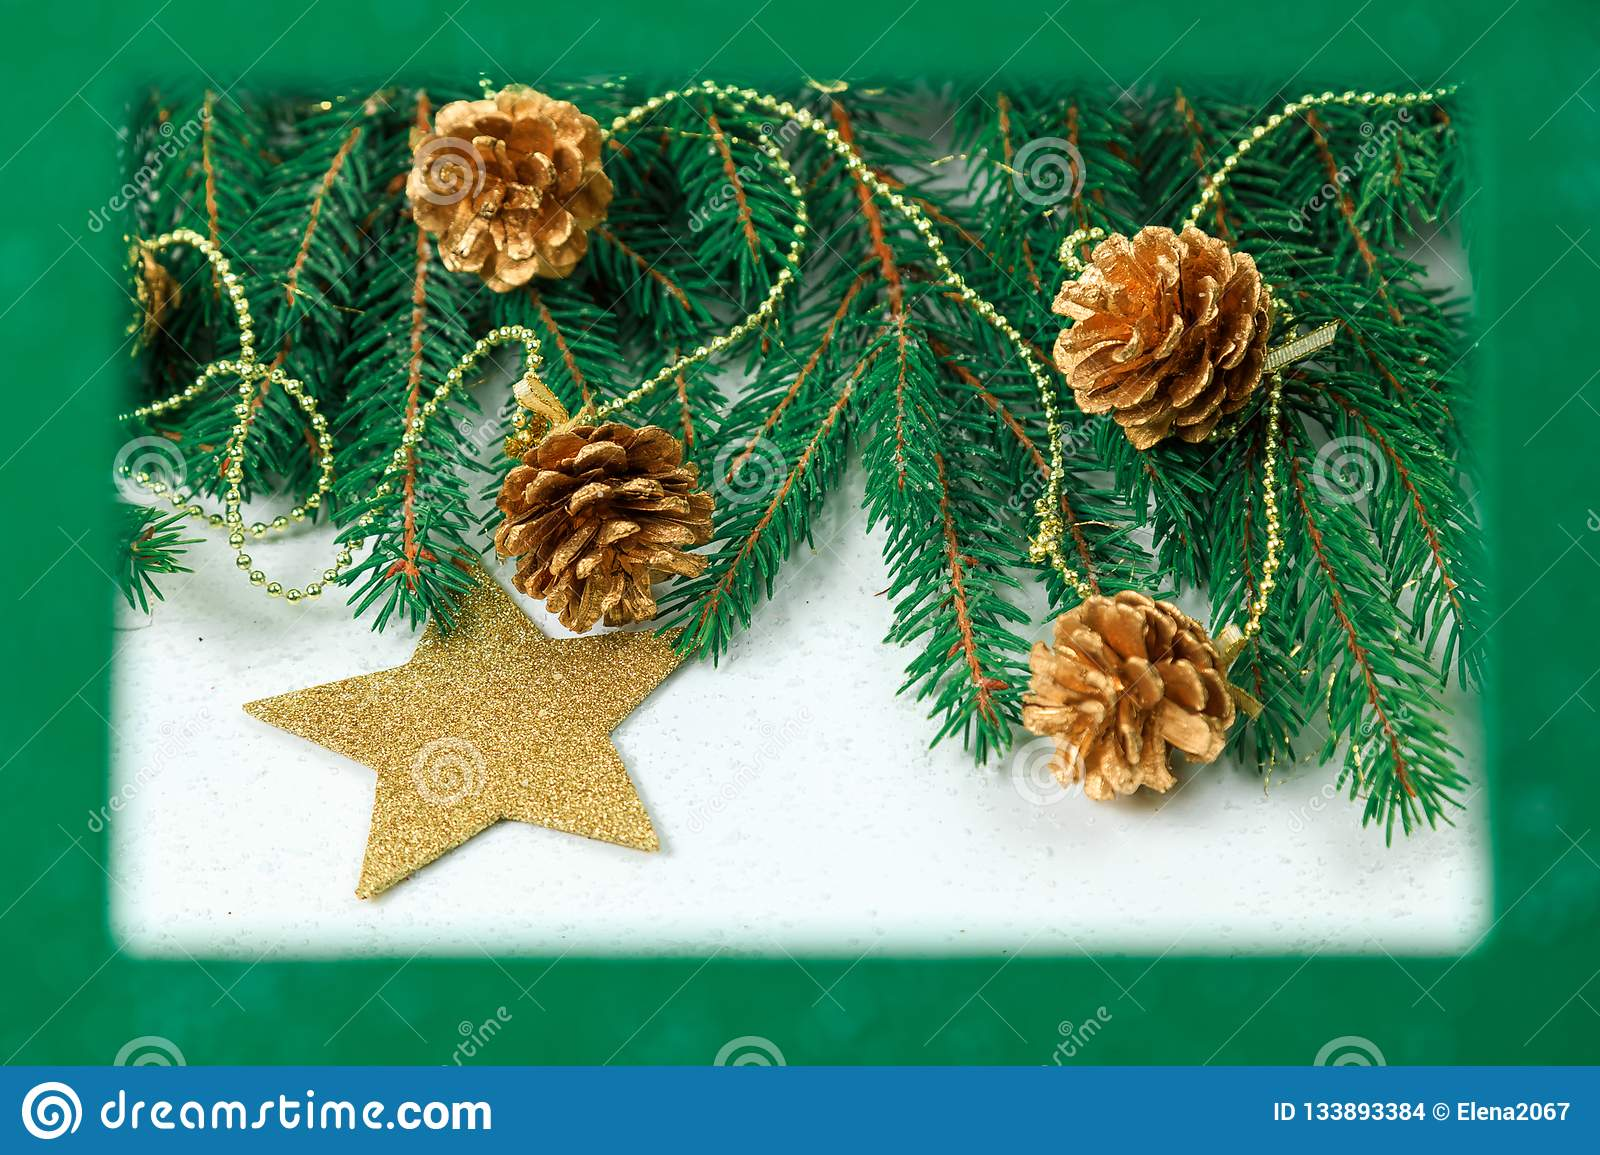 Christmas background. Christmas jewelry on fir-tree branches, gold spheres, garlands in a green frame for a photo or an inscriptio